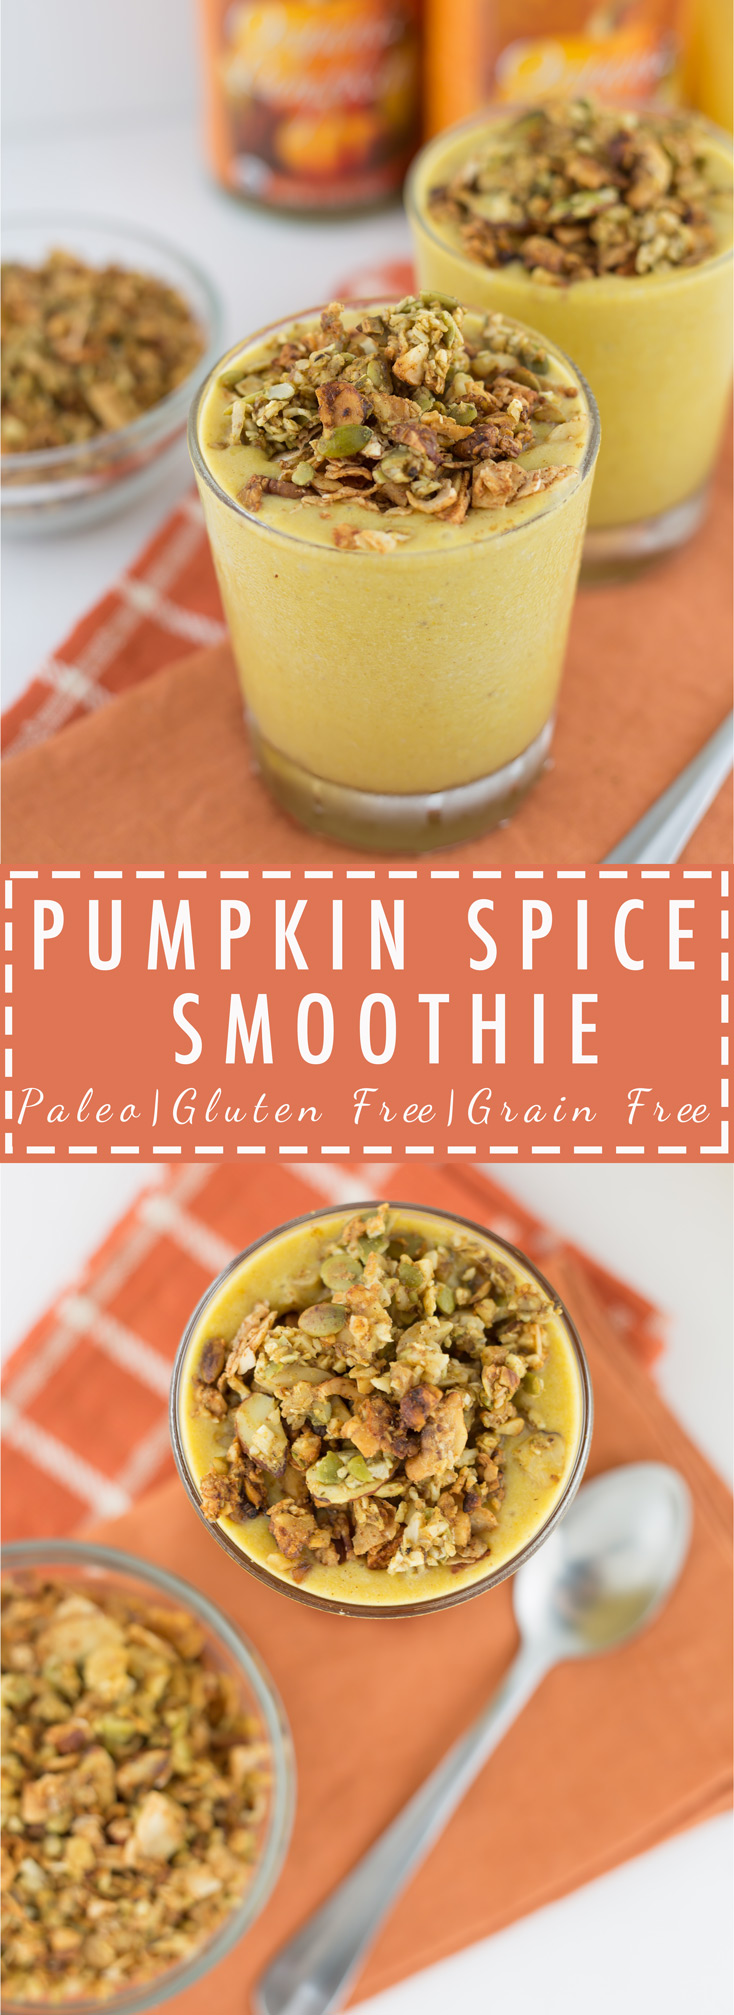 Paleo, Pumpkin Sice Smoothie, Primal, Grain Free, Gluten Free, Added Sugar Free, Healthy, Clean